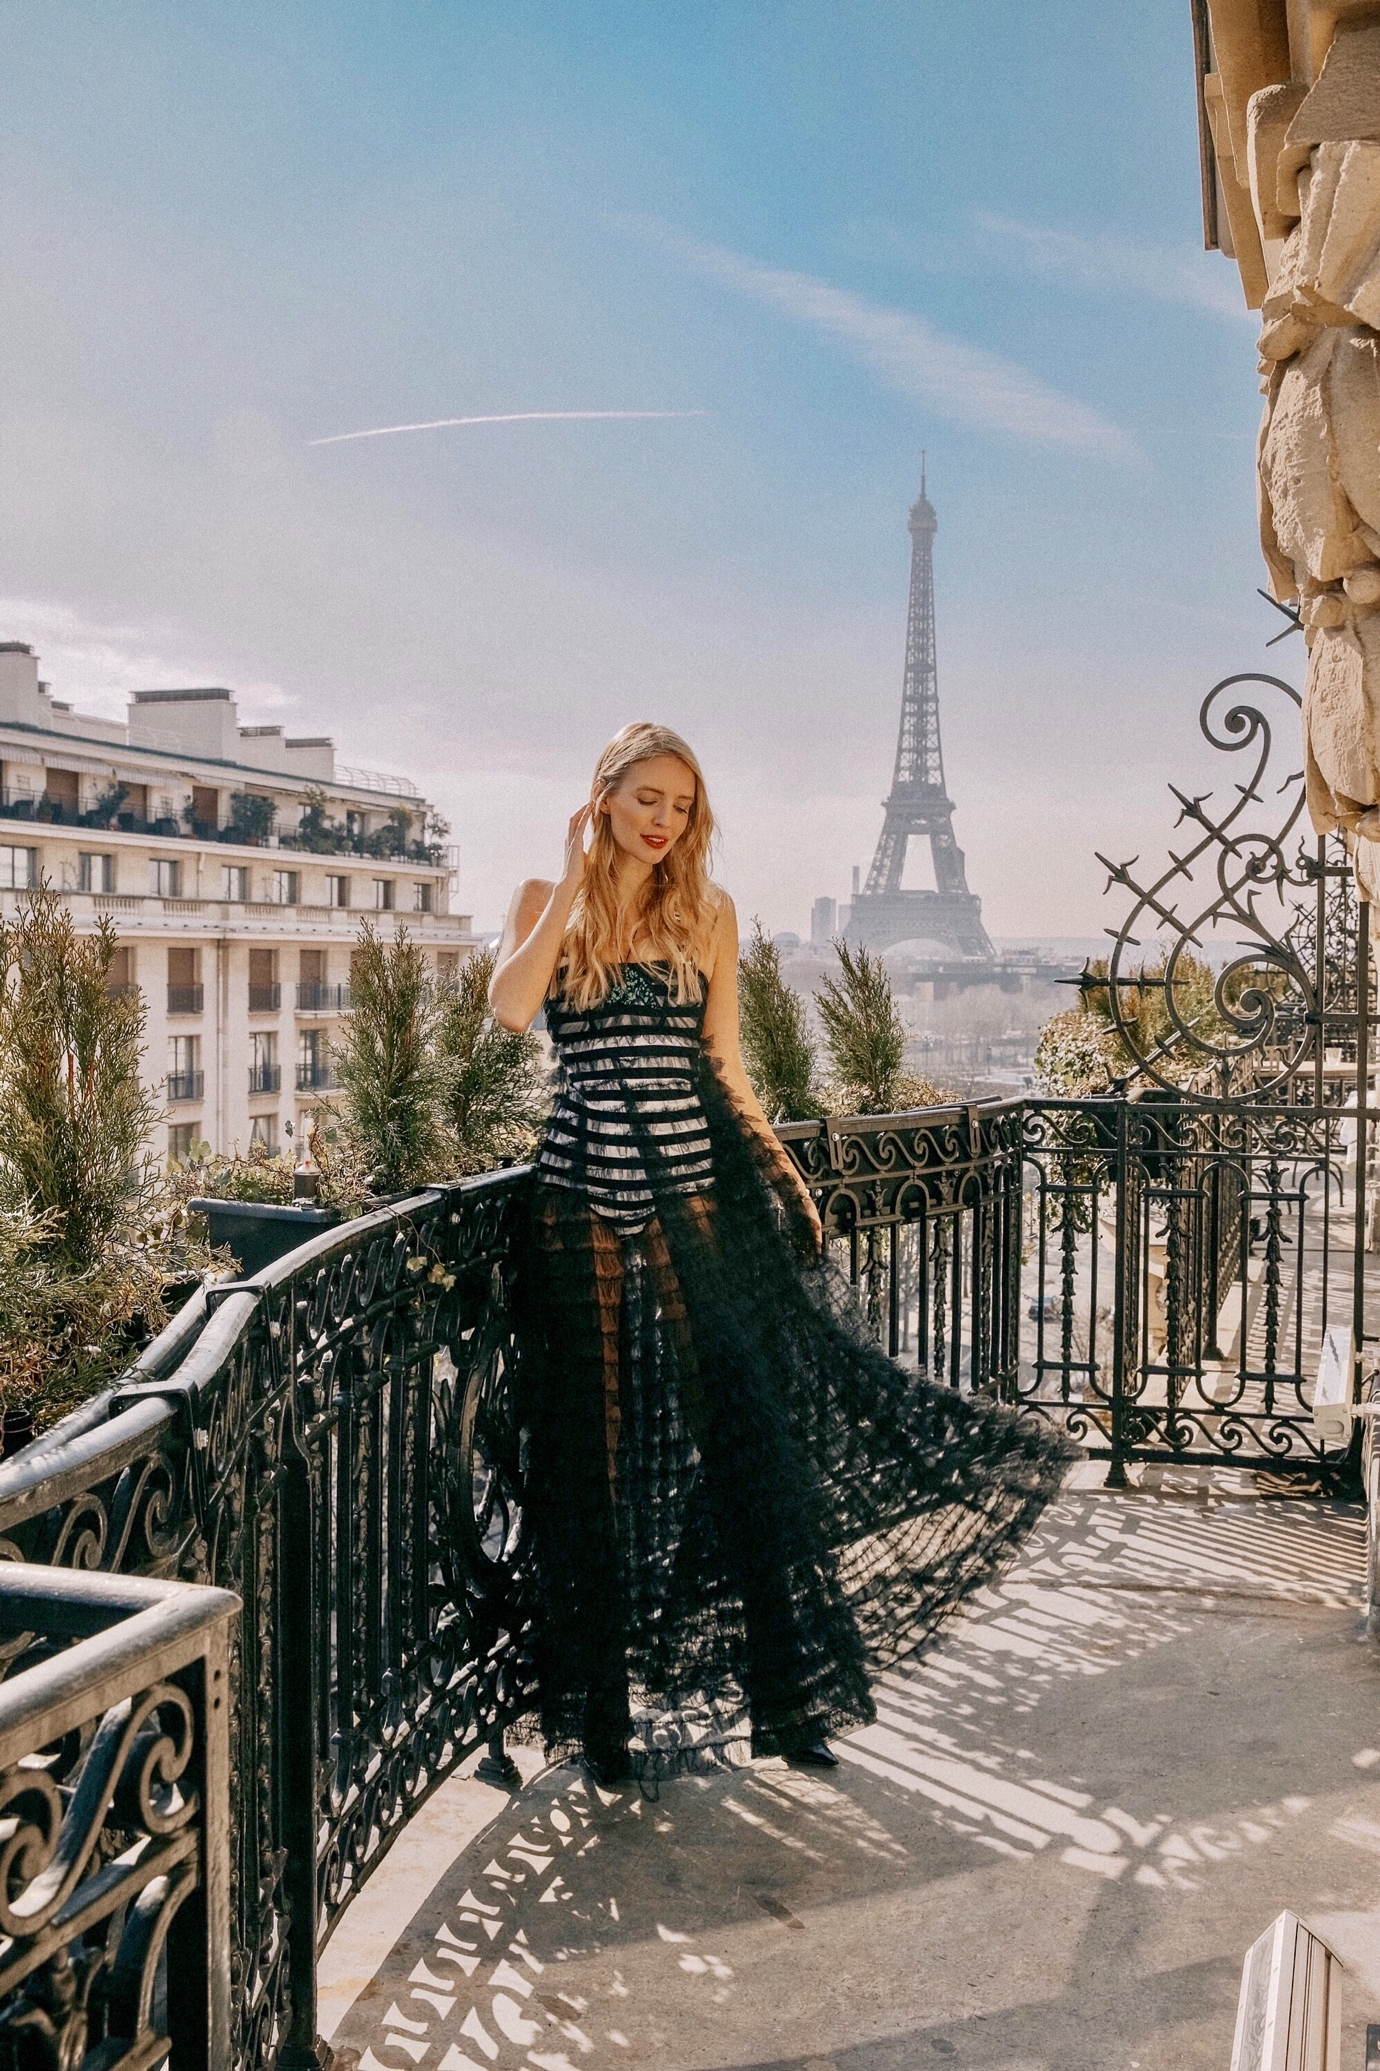 Travel Inspiration | Around the World by Instagram Vol. 02, No. 02 – in 37 Breathtaking Images from the Amsterdam Canals to the Magnolia Blossoms in Paris